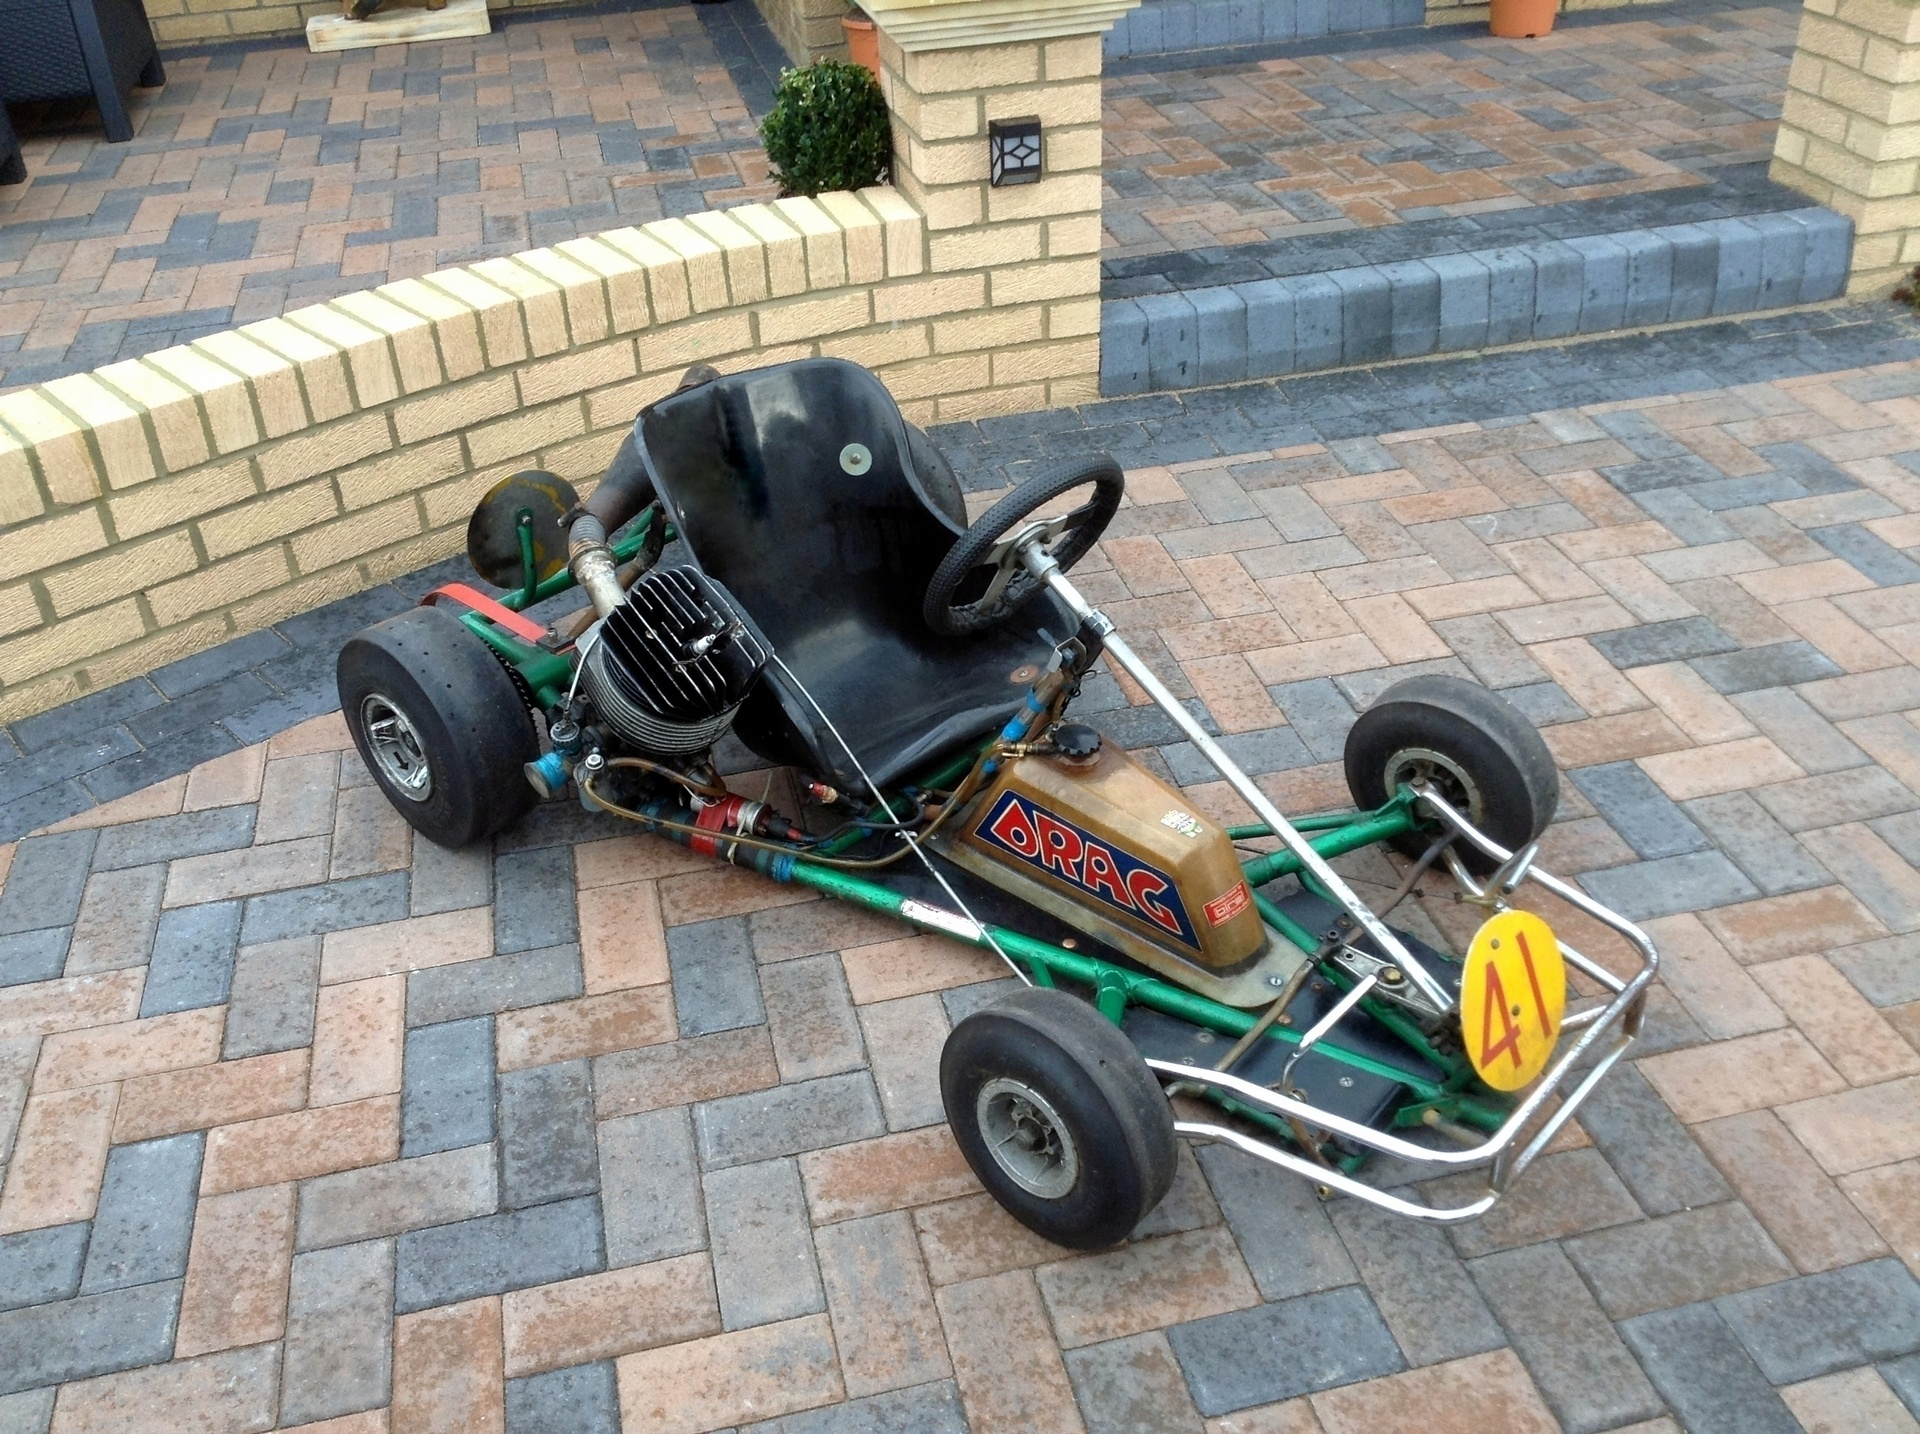 BIREL DRAG Mk2 1969 / KOMET K77 - Found in Kirkcaldy